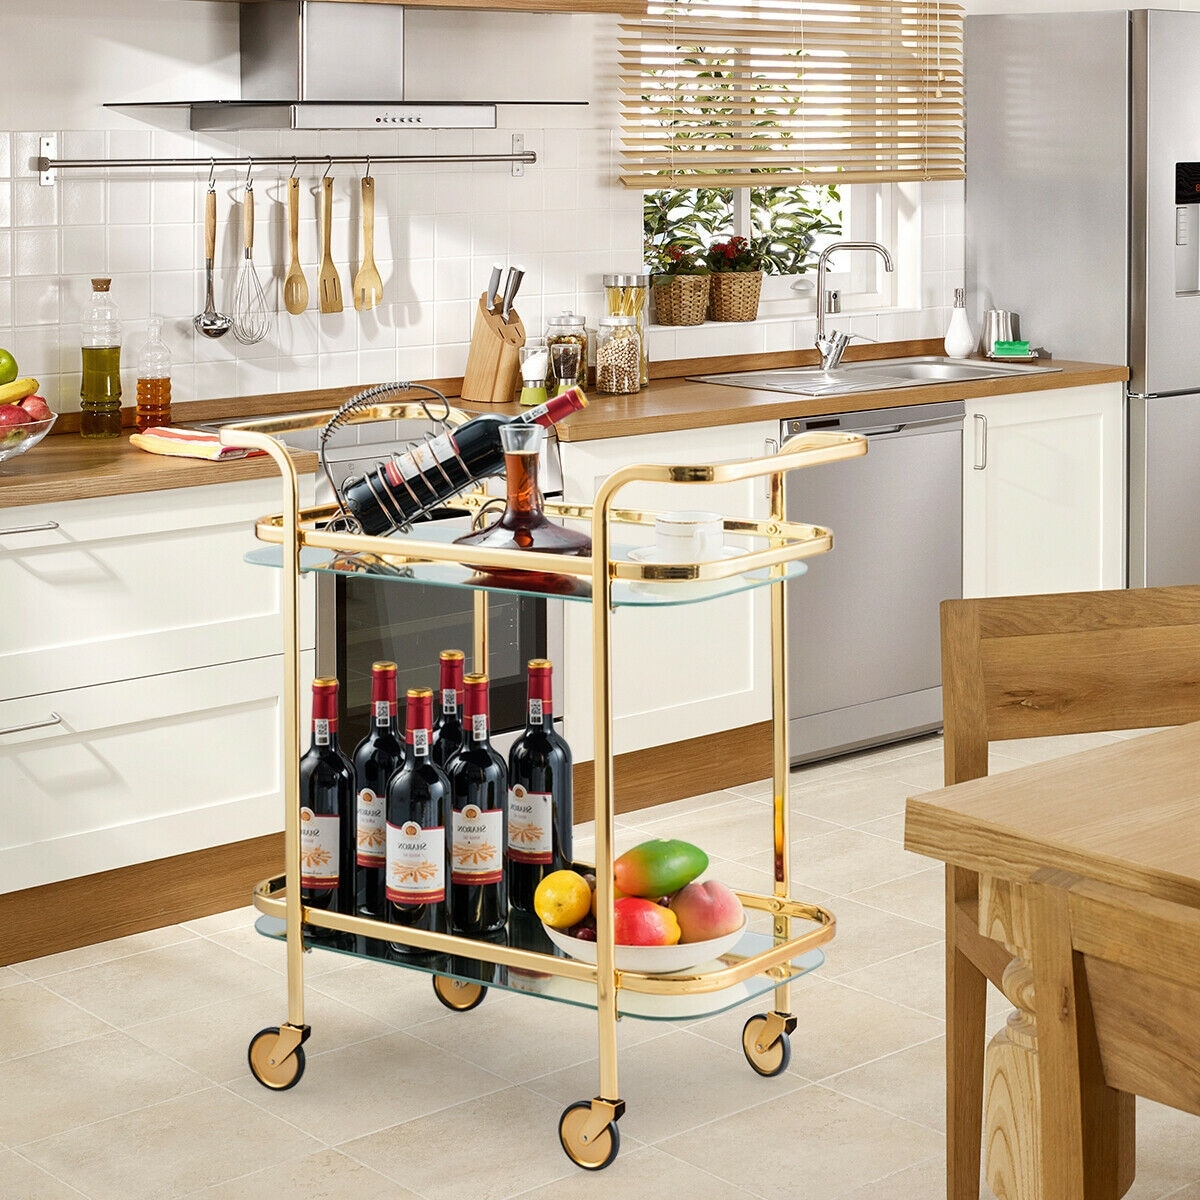 Gymax 2 Tier Serving Cart Rolling Kitchen Bar Cart W Glass Shelves Gold Metal Frame Glass And Gold